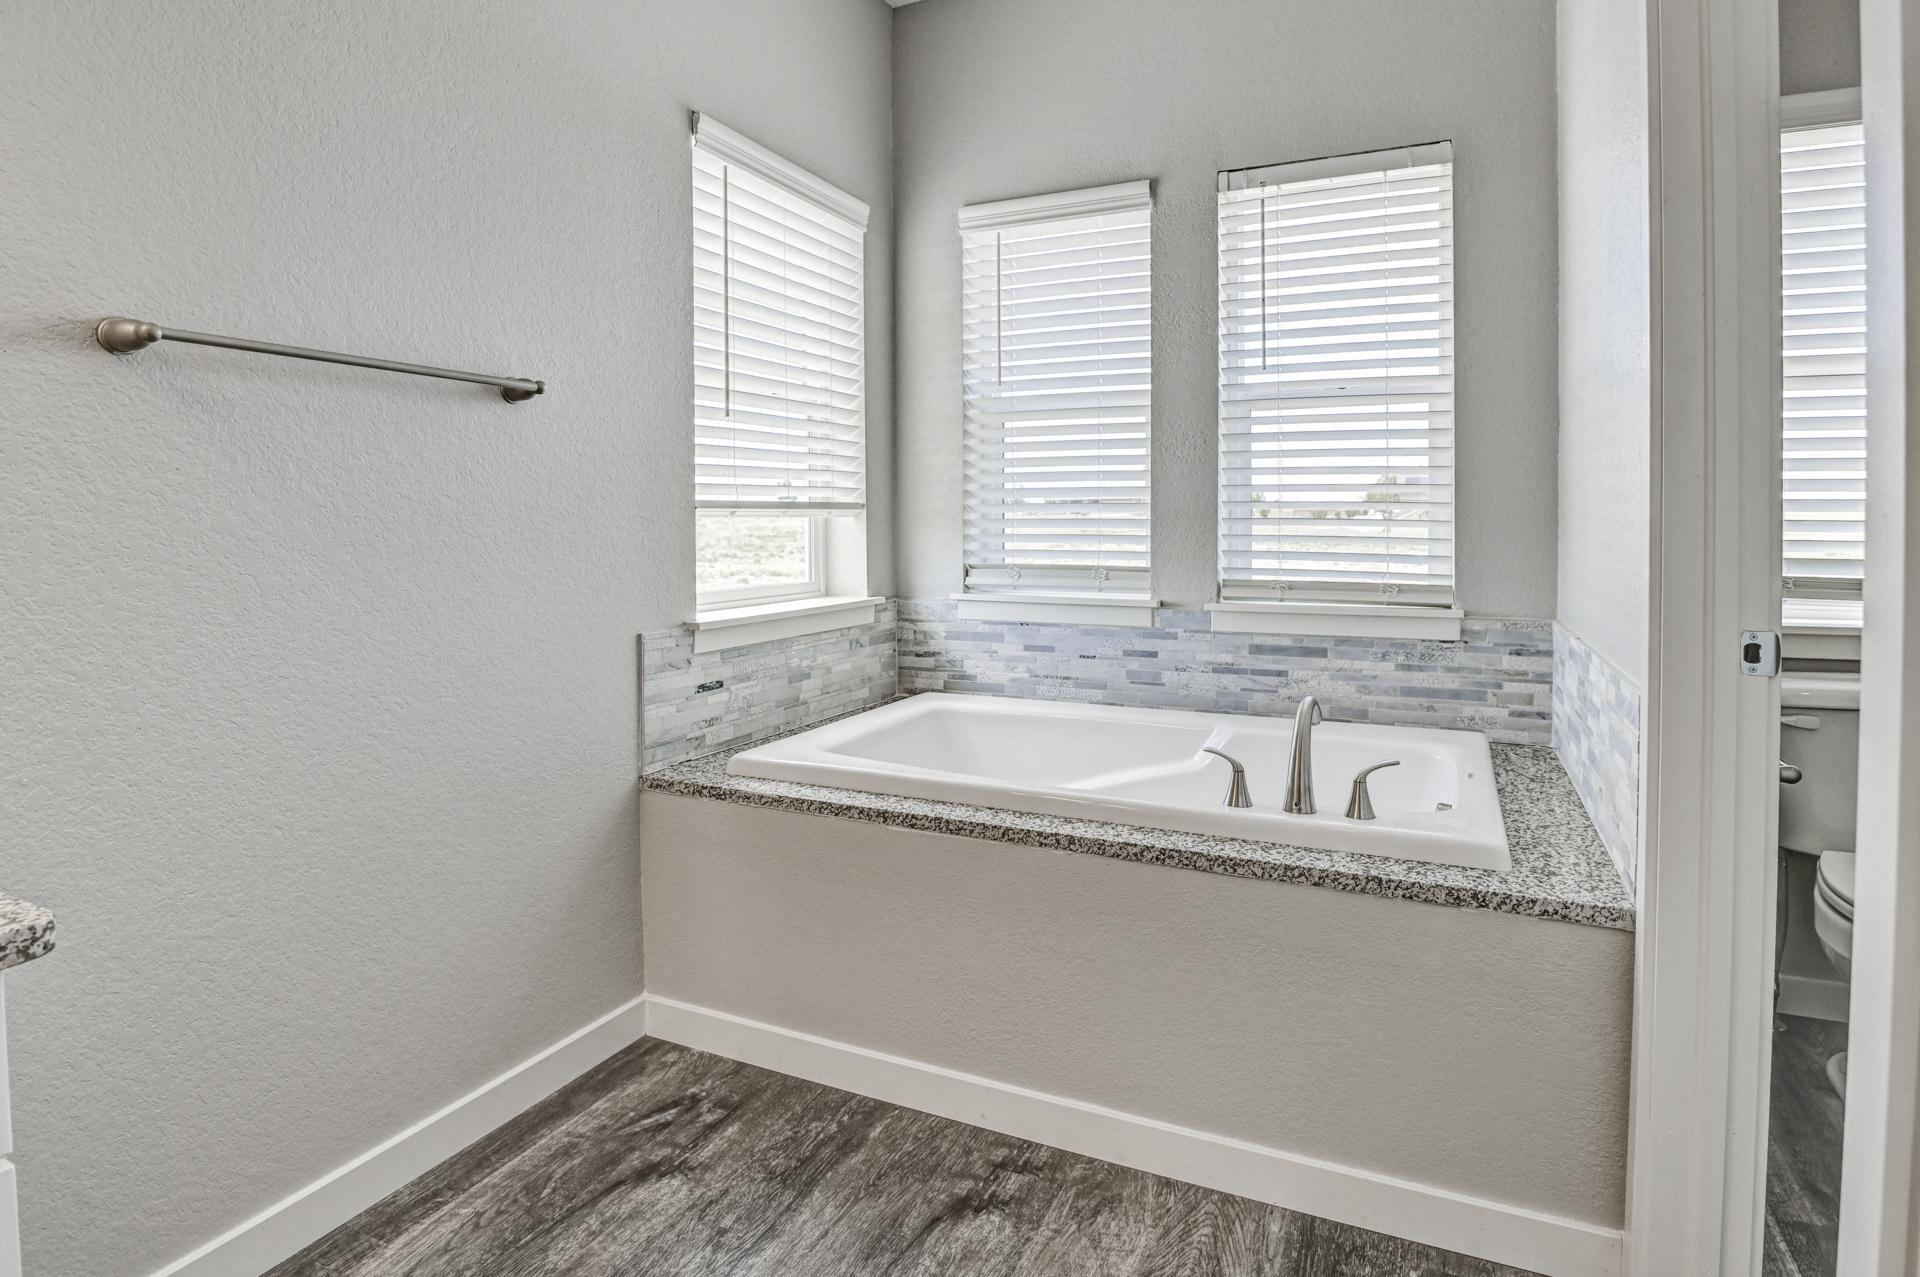 Bathroom featured in the Harmony By Westover Homes in Colorado Springs, CO